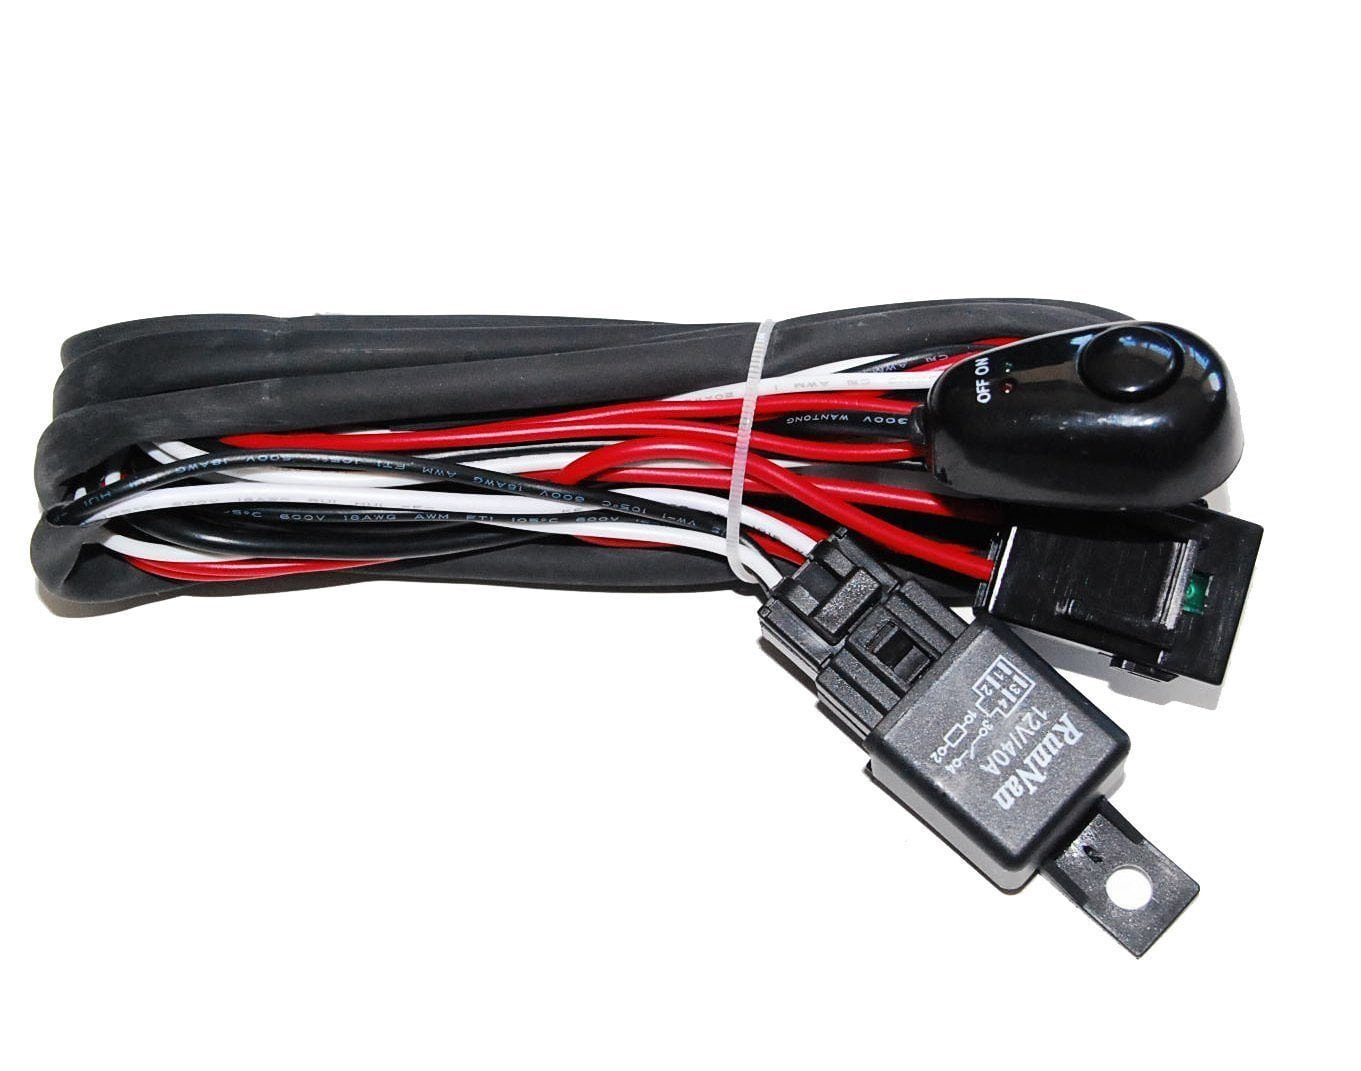 p 2493 a 1360_6 off road wiring kit off road wiring harness at readyjetset.co